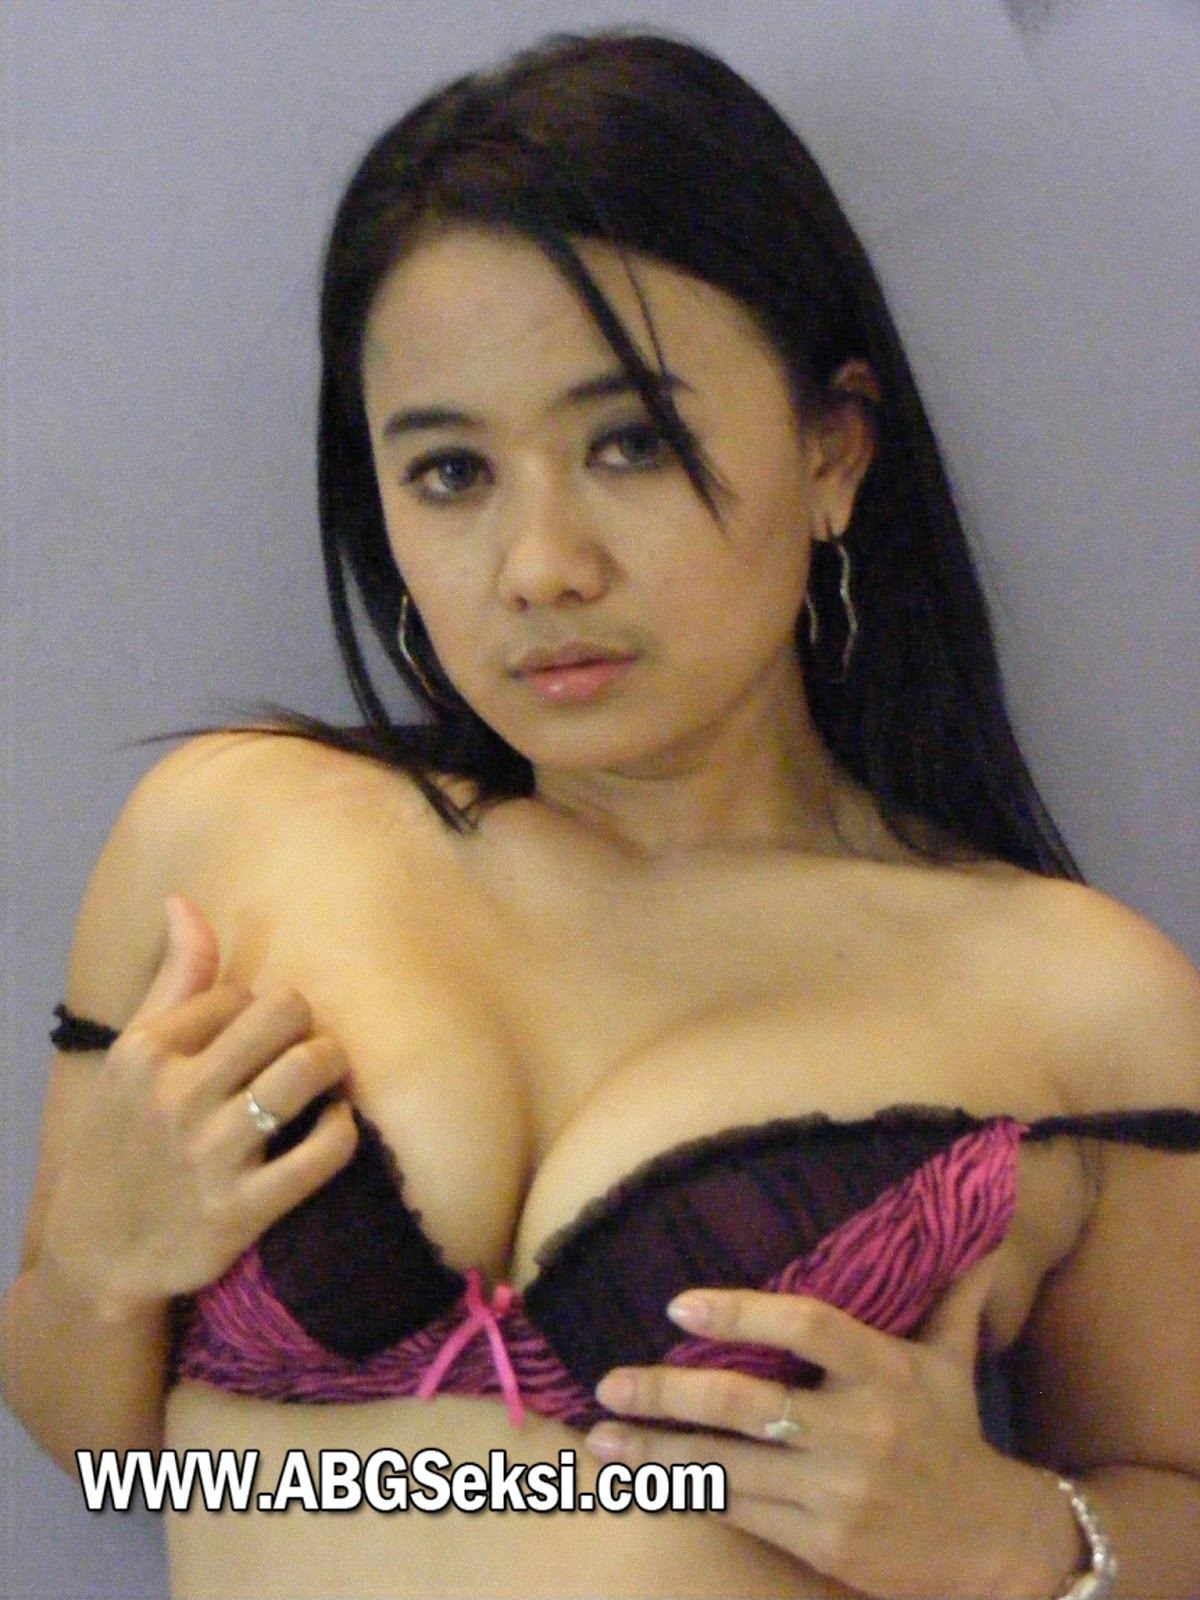 from Reese foto artis porno sexy indonesia